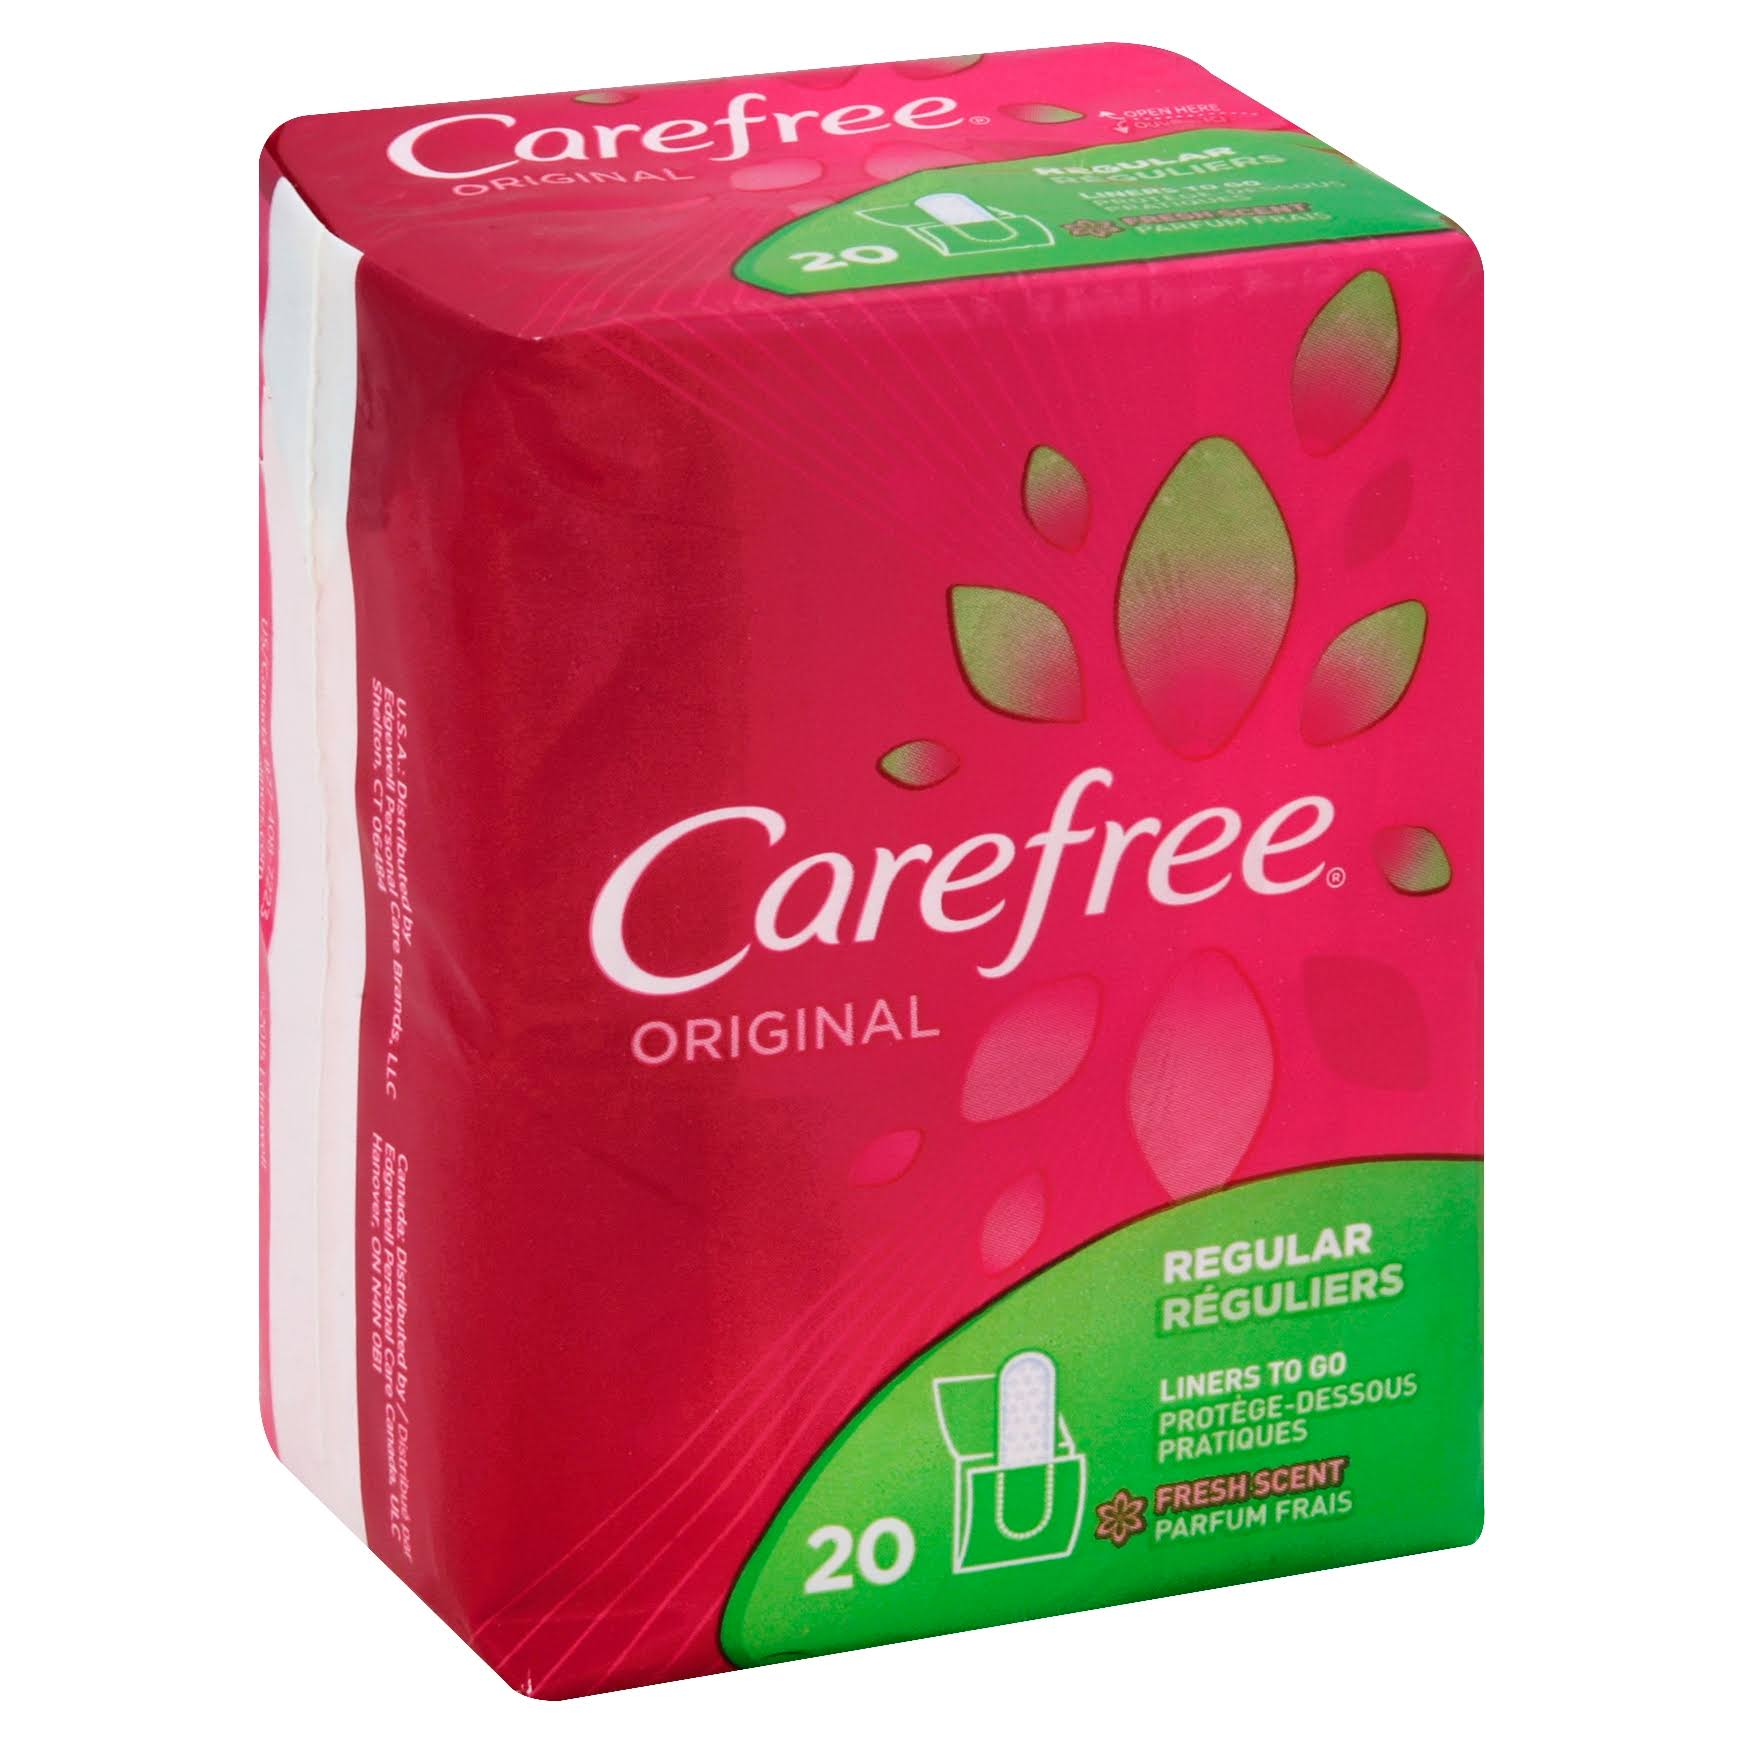 Carefree Original Panty Liners - Fresh Scent, 20 Count